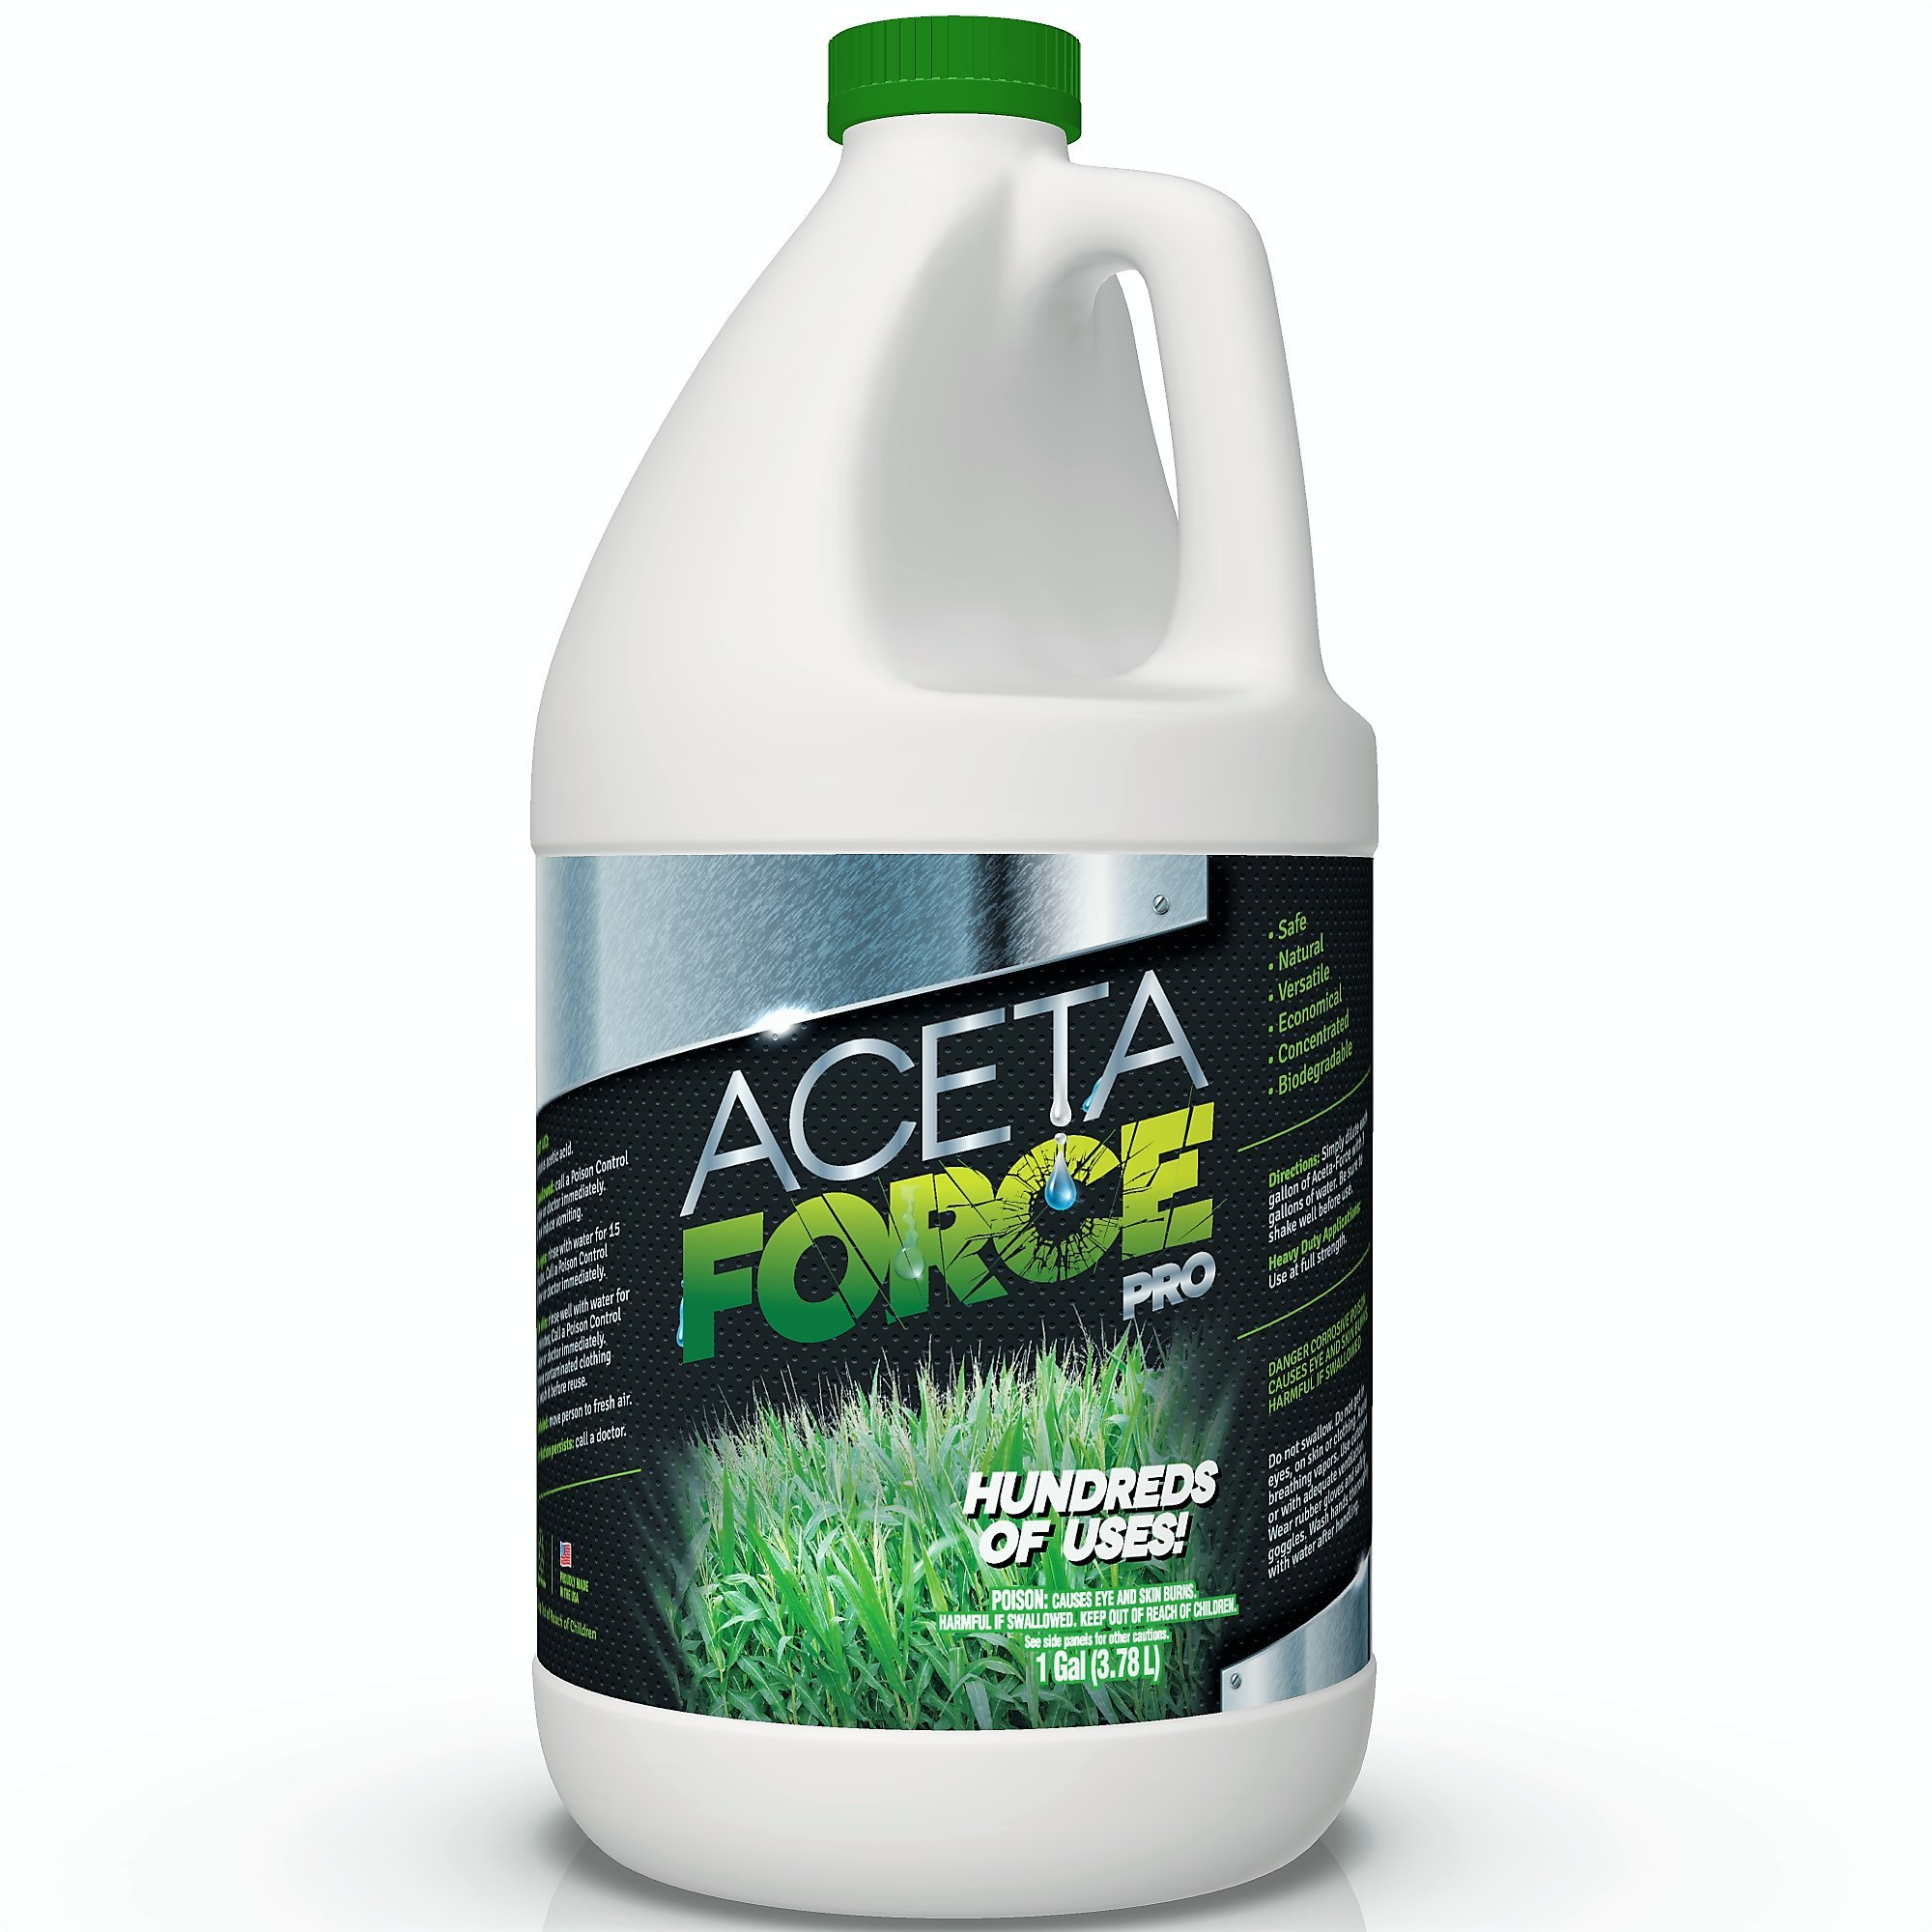 ACETA FORCE | Industrial Strength 30% Natural Acetic Acid Vinegar For Home & Garden (1 Gallon) by EcoClean Solutions